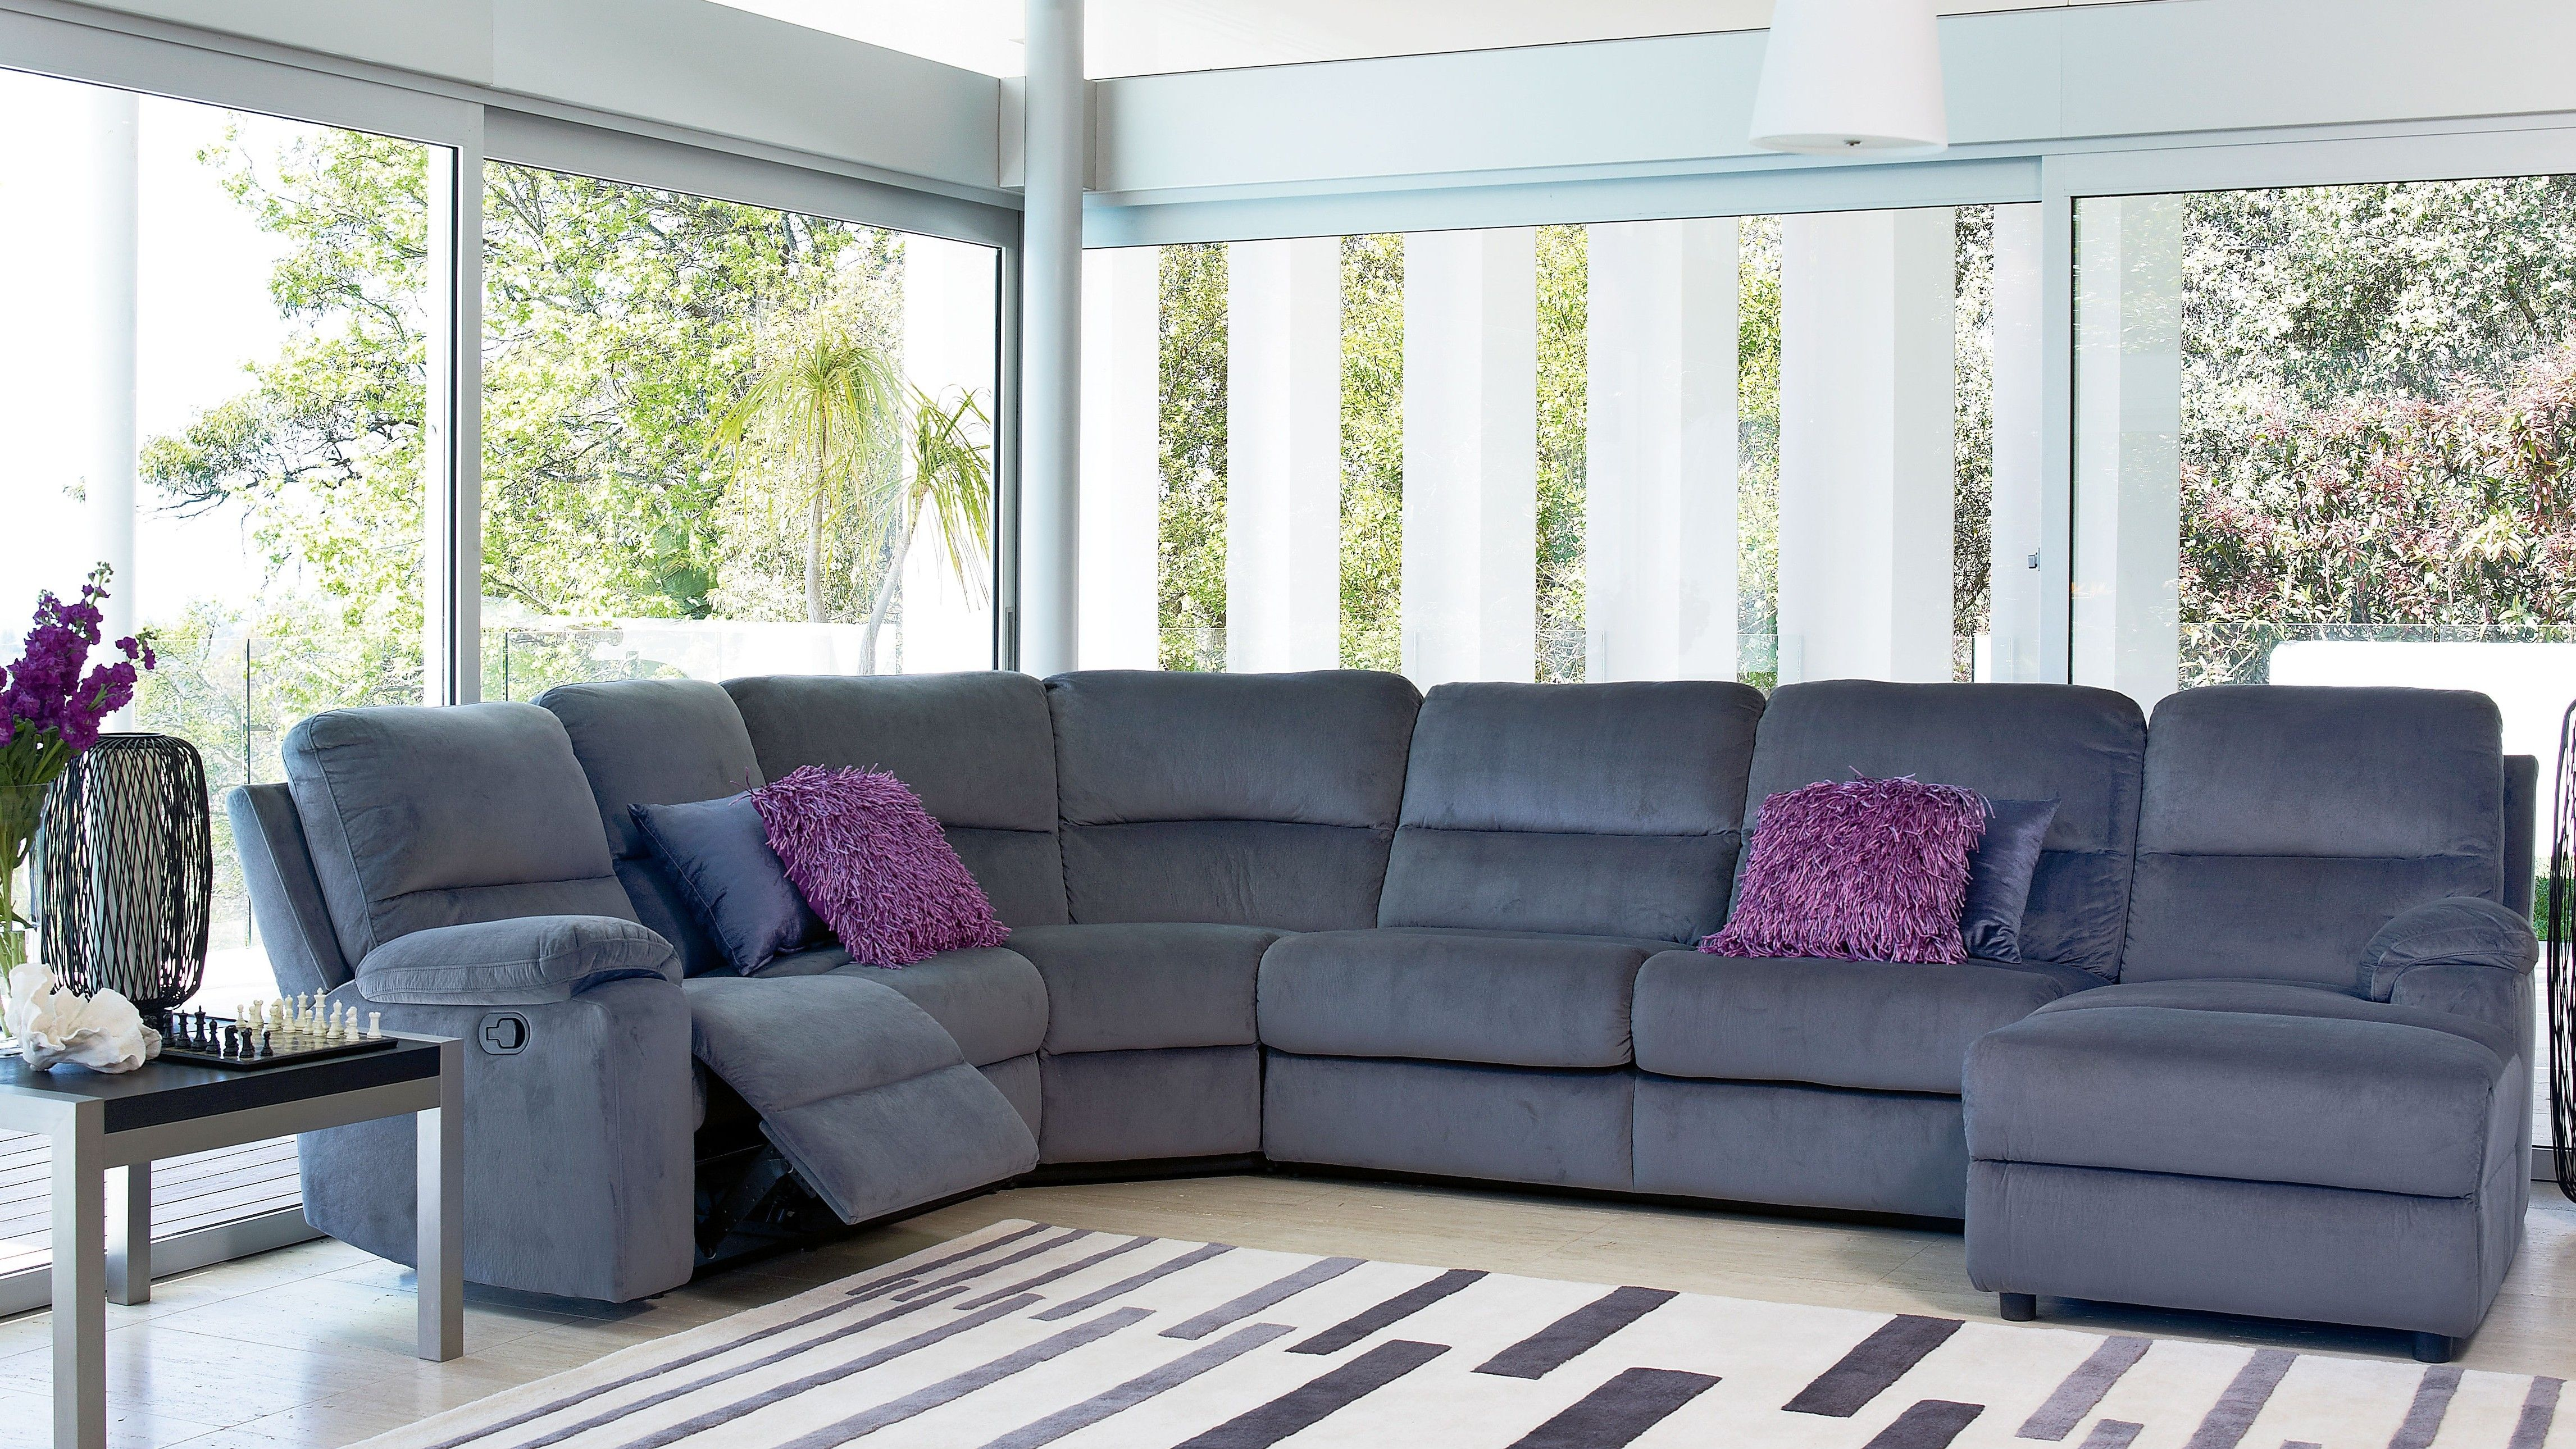 Maxine Modular Lounge Suite with Pull Out Sofa Bed : chaise lounge harvey norman - Sectionals, Sofas & Couches